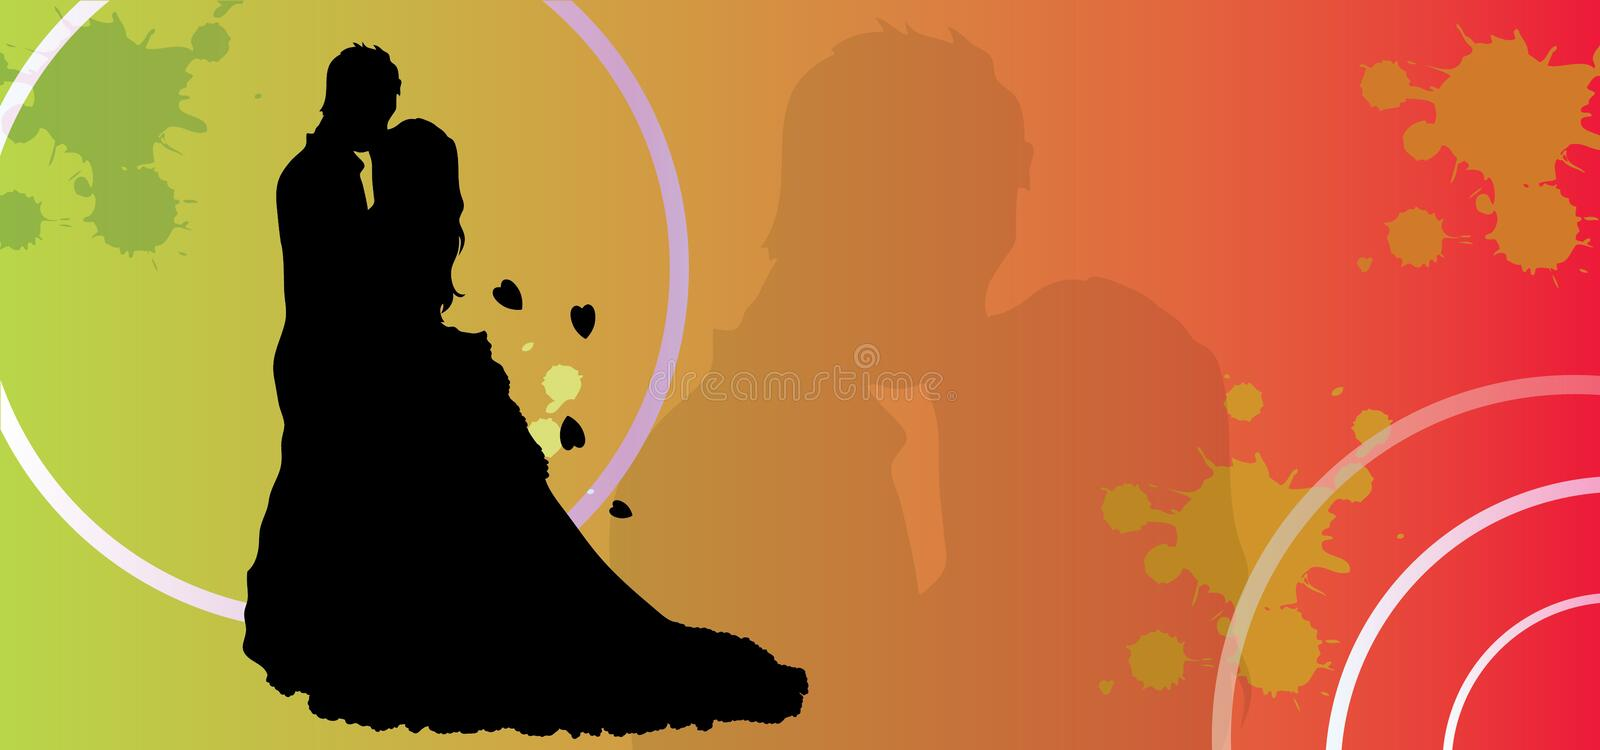 Couple loving eps, valentine day vector silhouette romance kiss wedding couples in love background stock illustration